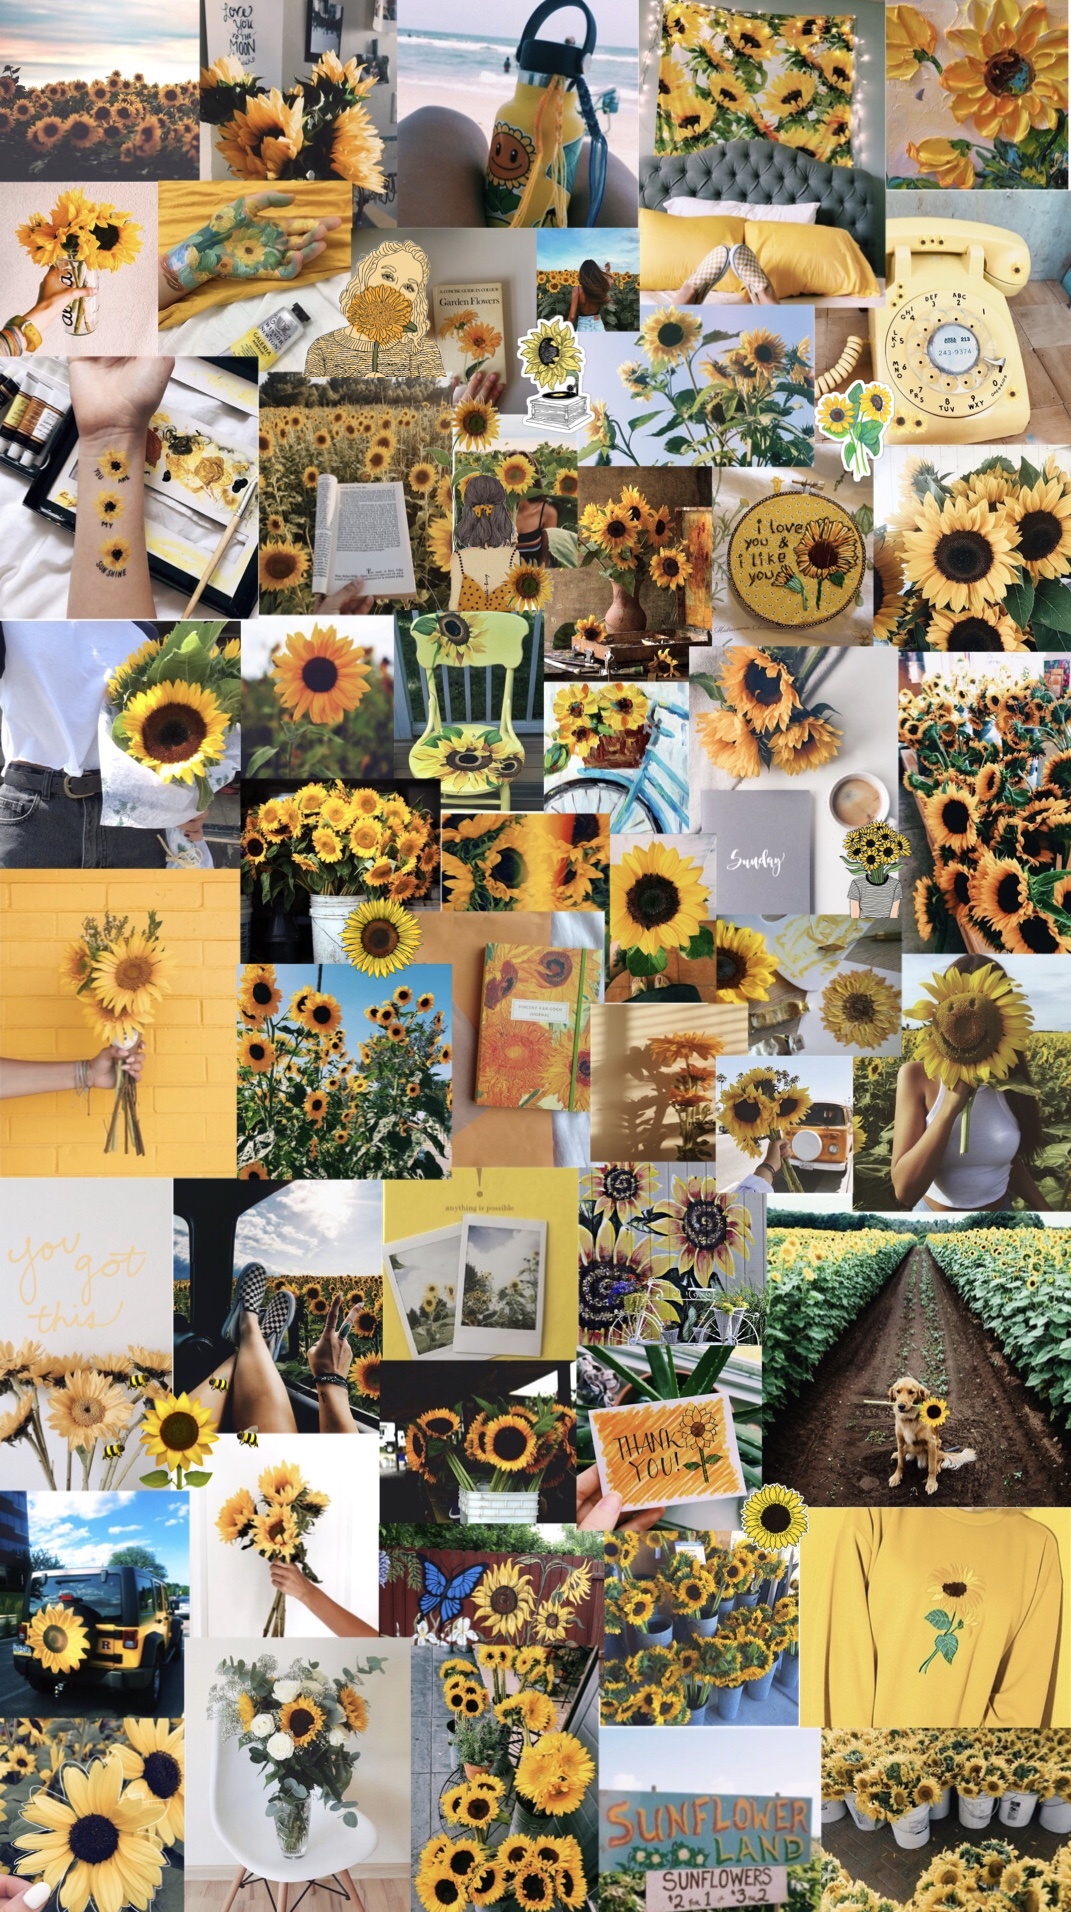 sunflowers 🌻 aesthetic background